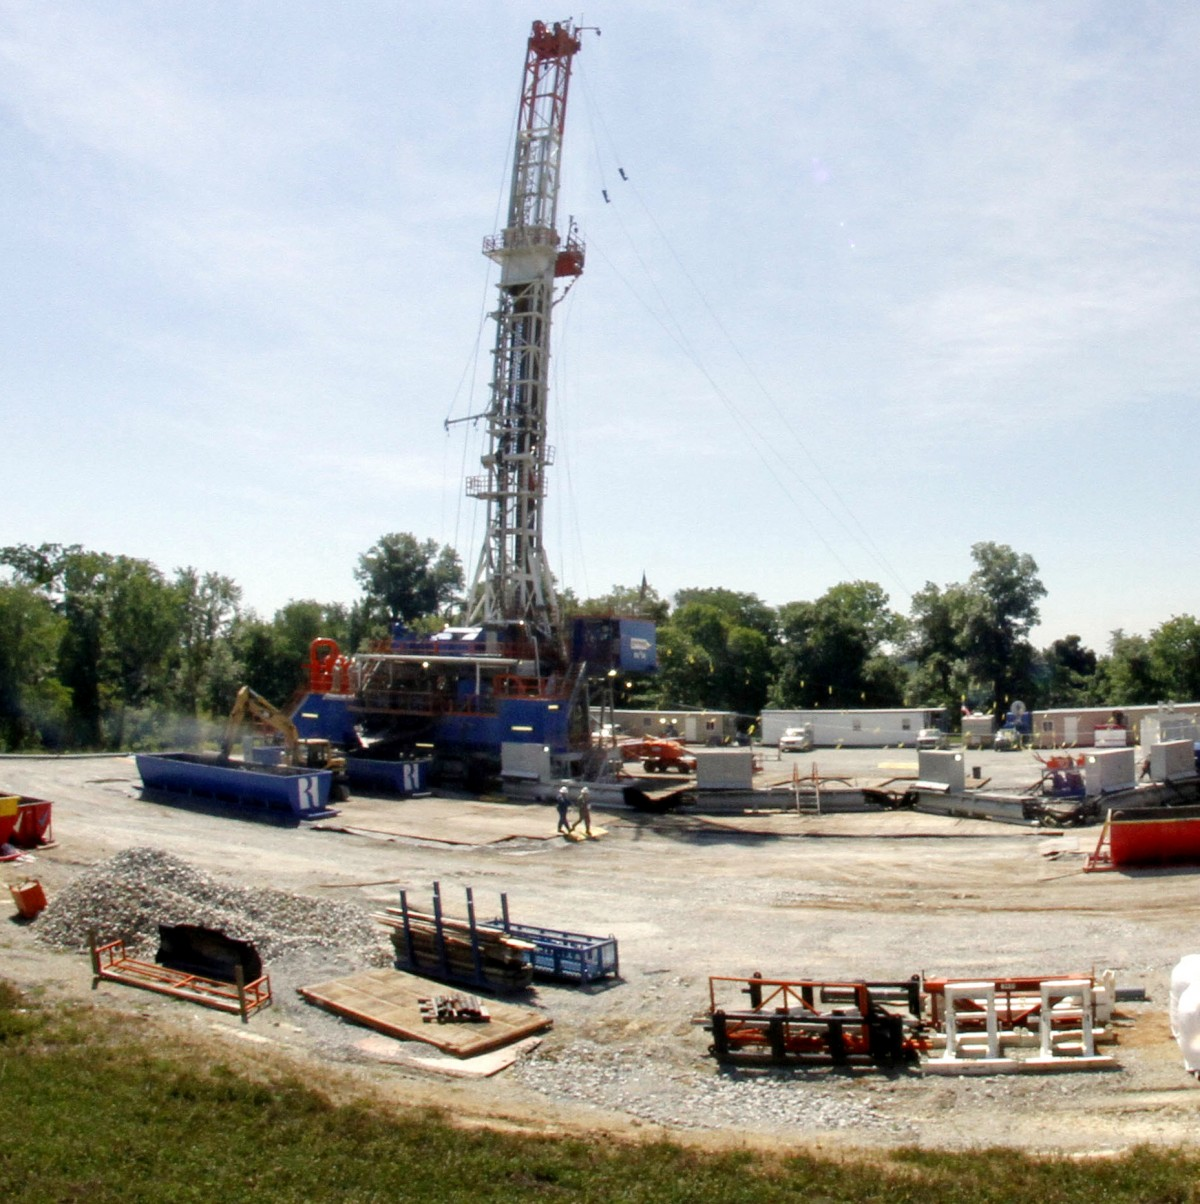 Big Oil In Bed With Lawmakers: How Industry Is Infiltrating Political Process